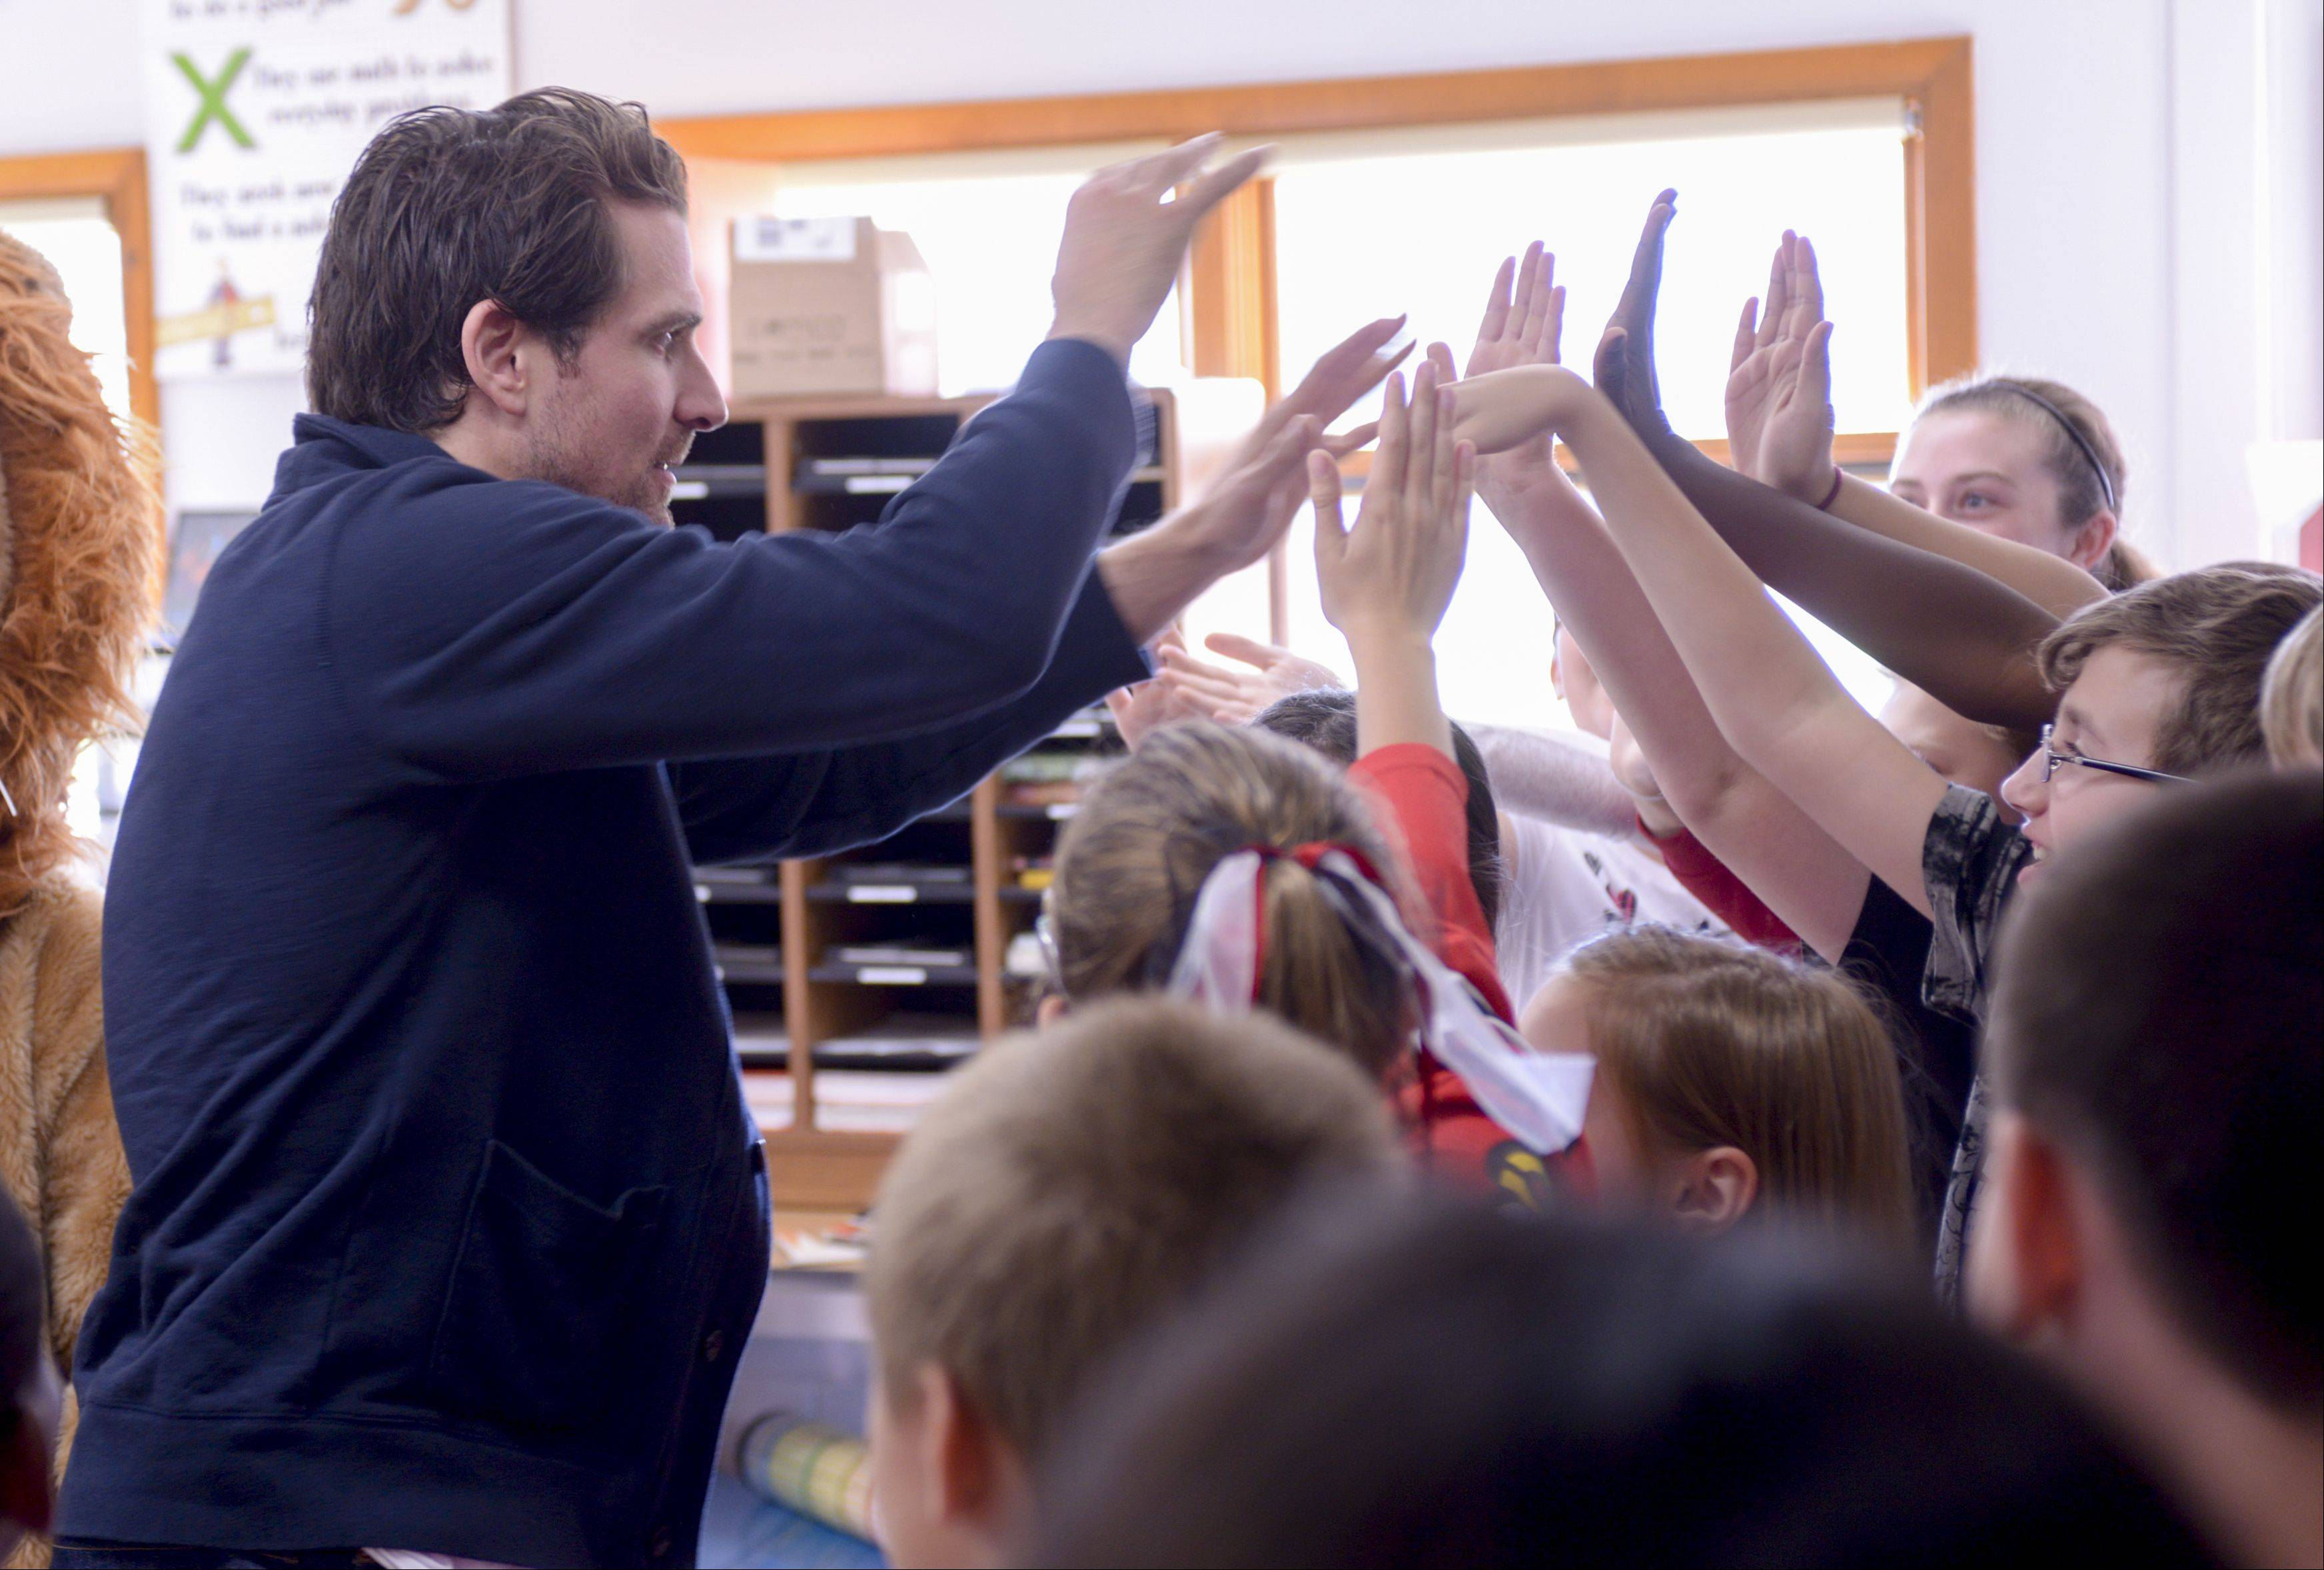 Chicago Blackhawks left wing Patrick Sharp visited every classroom at Lisle Junior High School Monday to reward students for their generosity during Goodwill's Pass It On Donation Challenge.